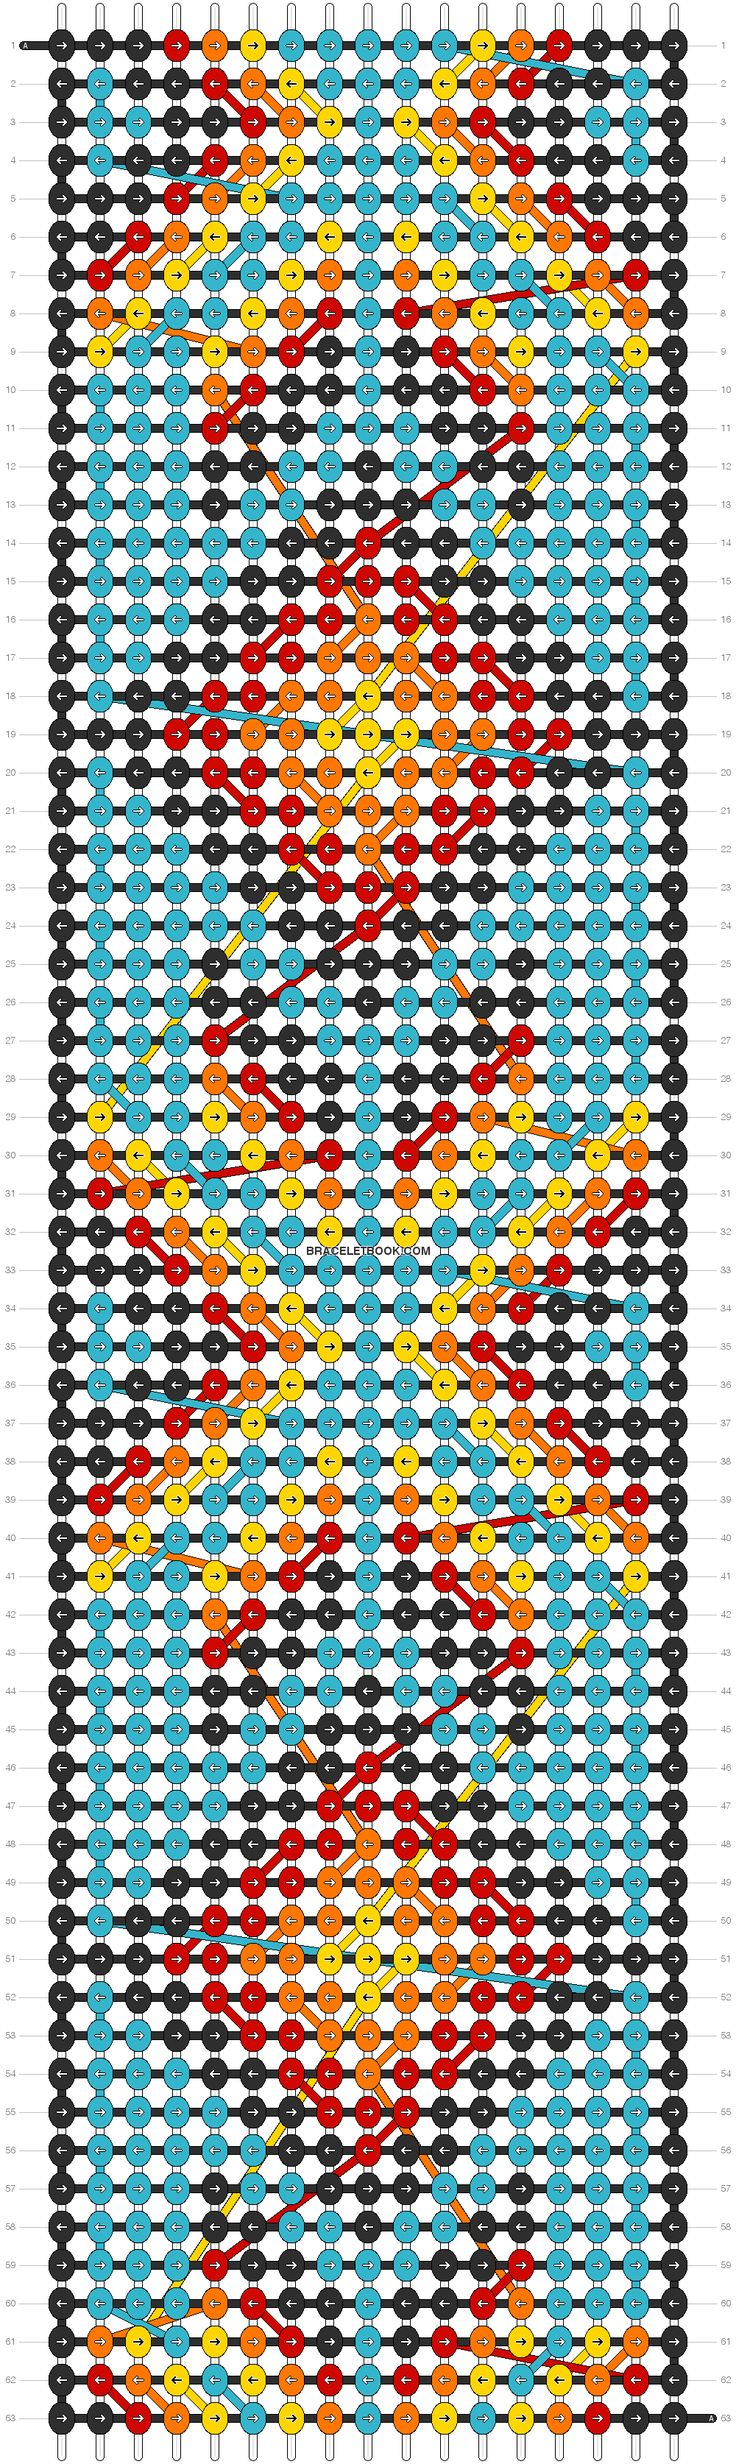 Native American Friendship Bracelet Pattern Google